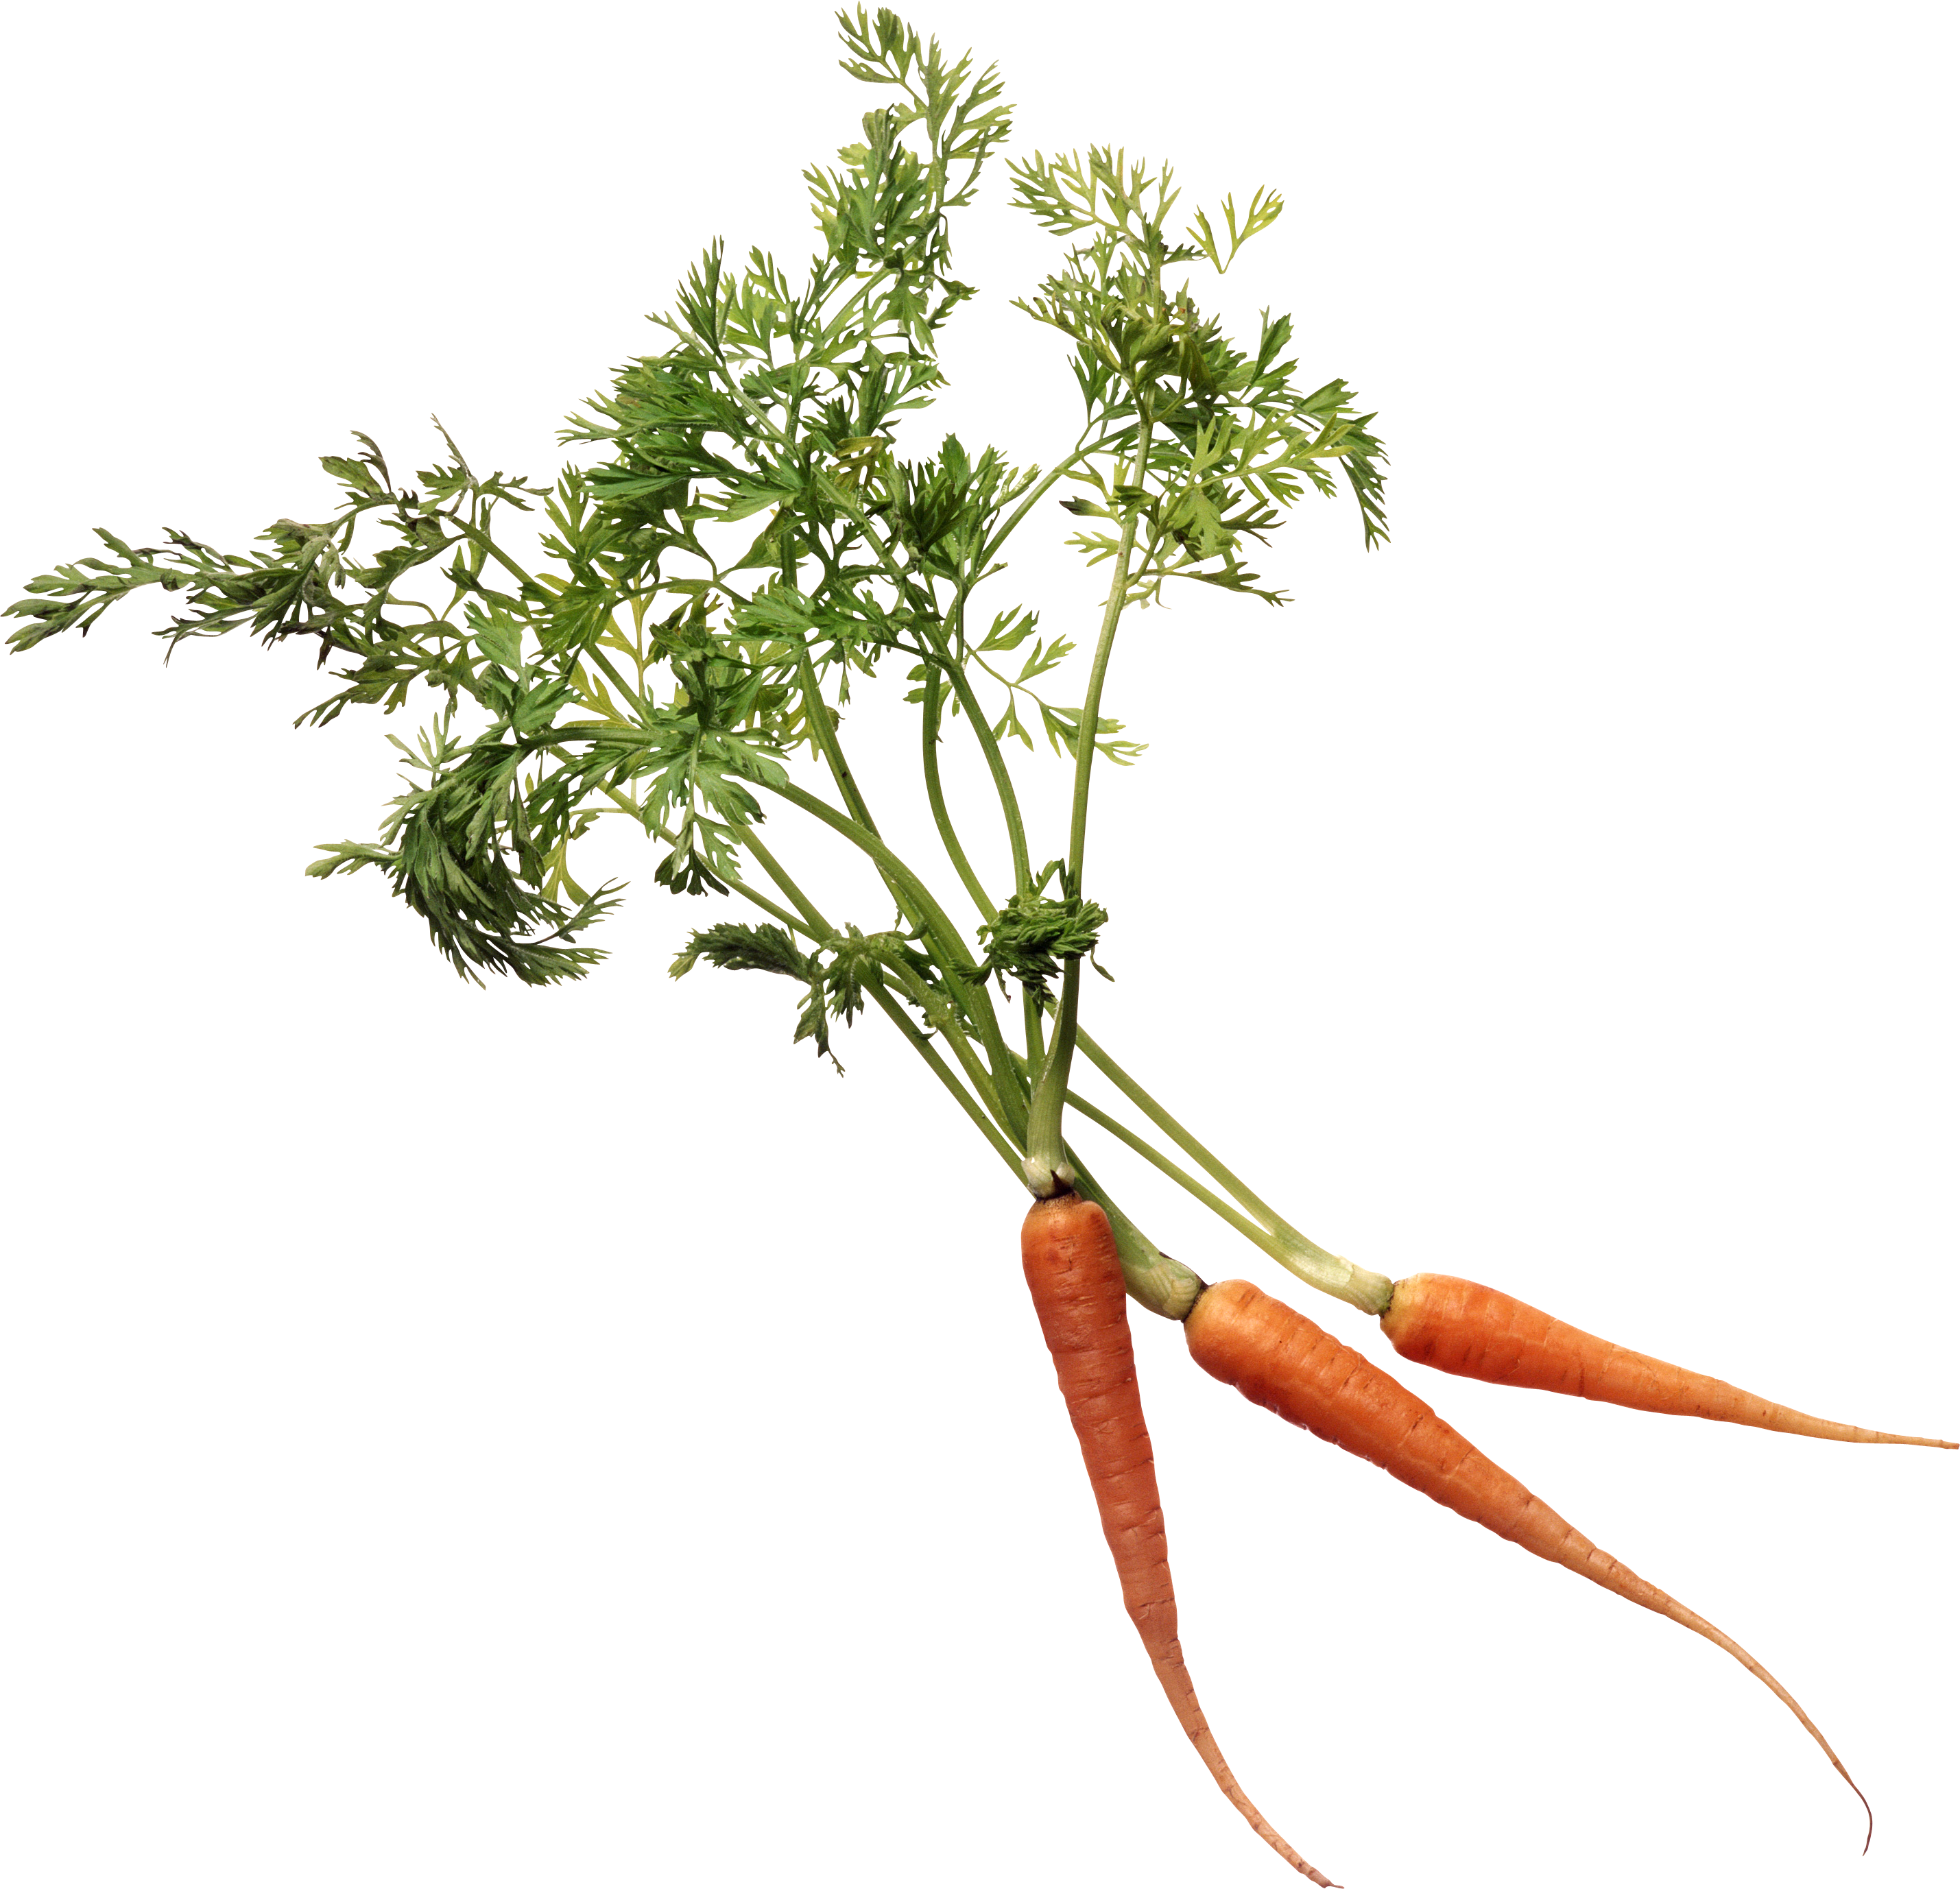 Carrots png stem. Carrot image purepng free